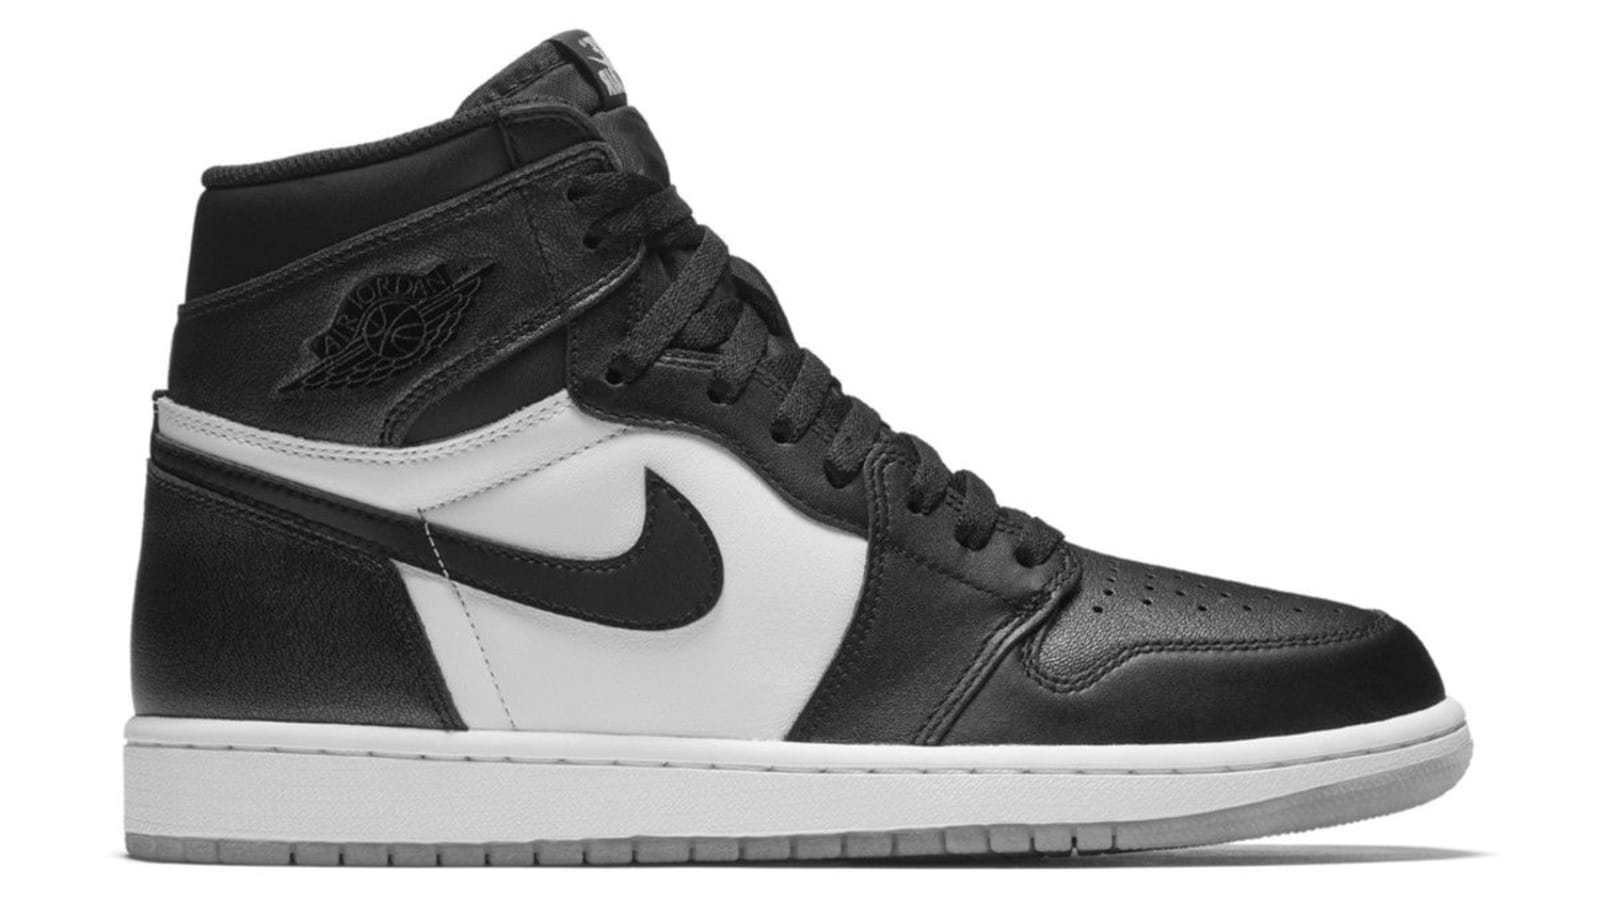 f5c36940373f Air Jordan 1 Retro High OG Release Date  Feb.   March 2018. Color  Game  Royal Summit White Black Style    555088-403. Price   160